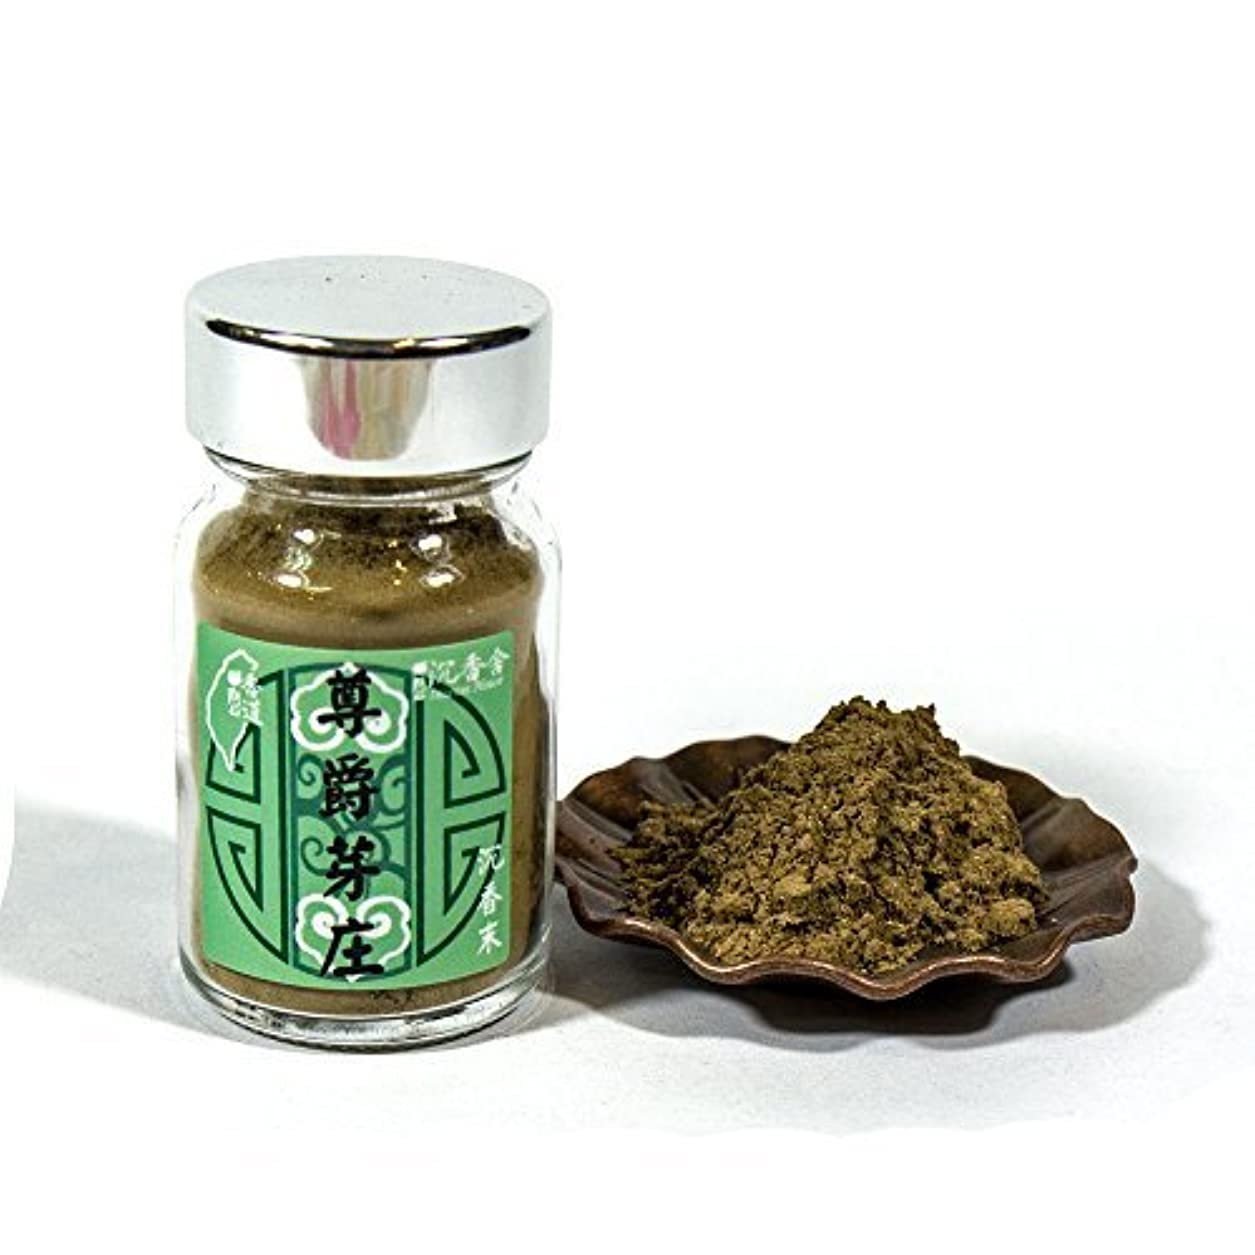 ズボンユーザーひまわりAgarwood Aloeswood Top Grade Old Stock NhaTrang Chen Xiang Incense Powder 10g by IncenseHouse - Raw Material [...